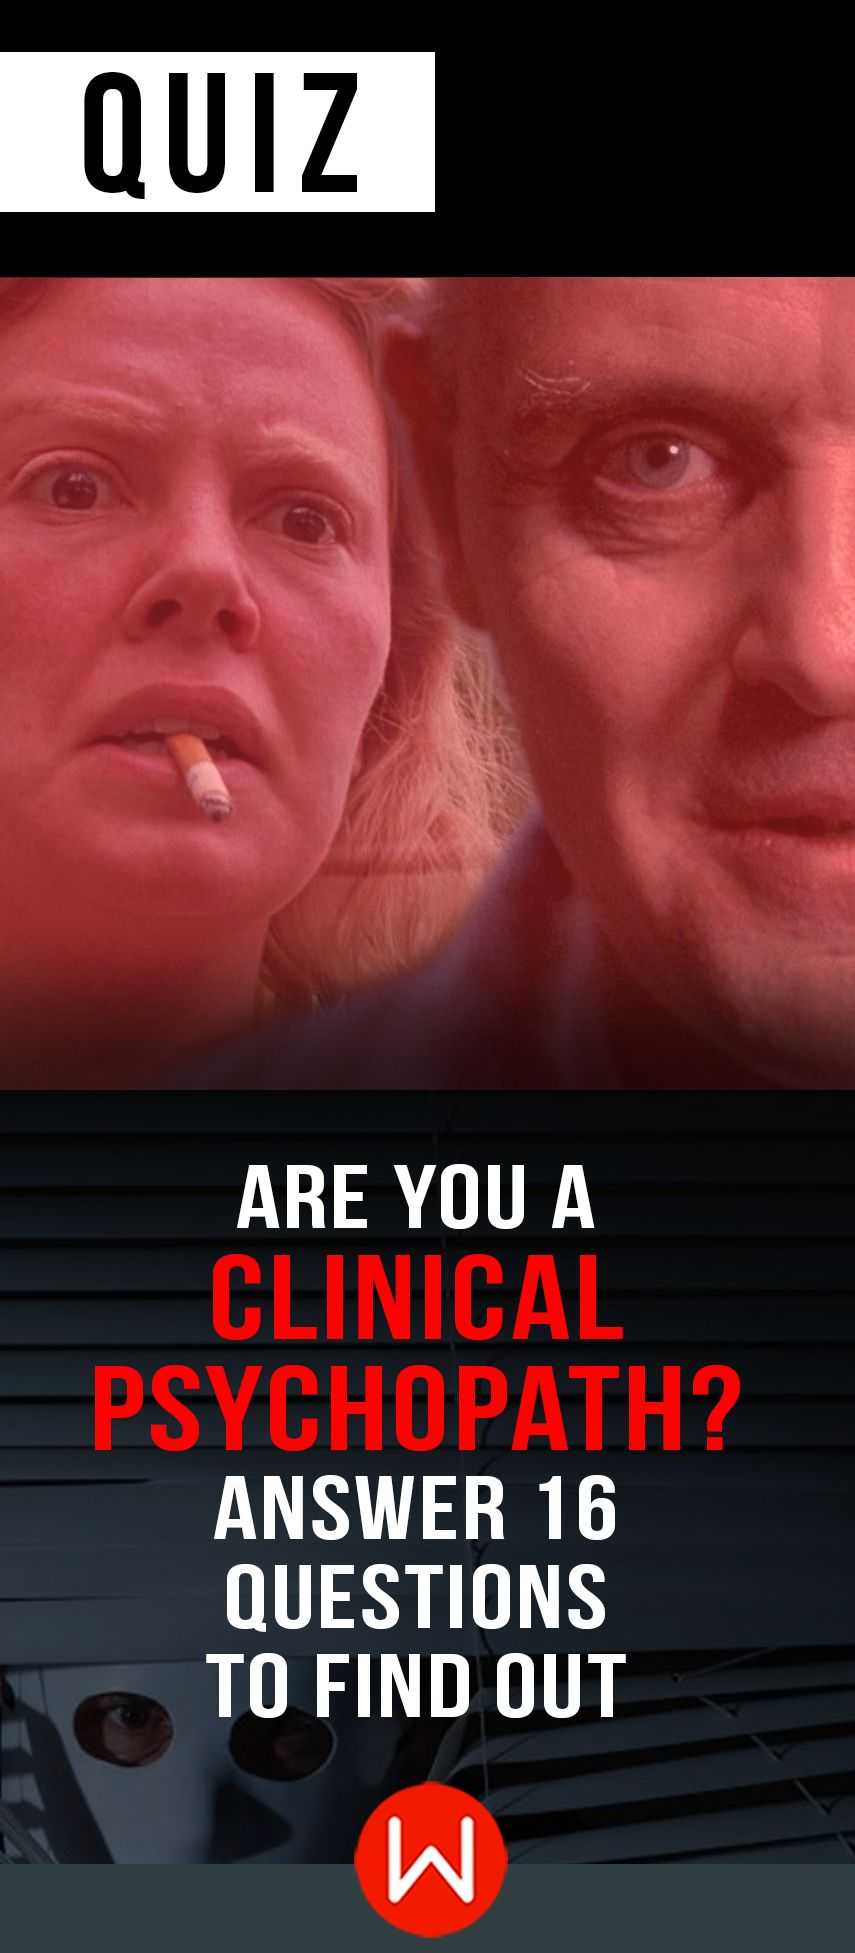 Psychopath Test Questions >> Quiz Are You A Clinical Psychopath Answer 16 Questions To Find Out